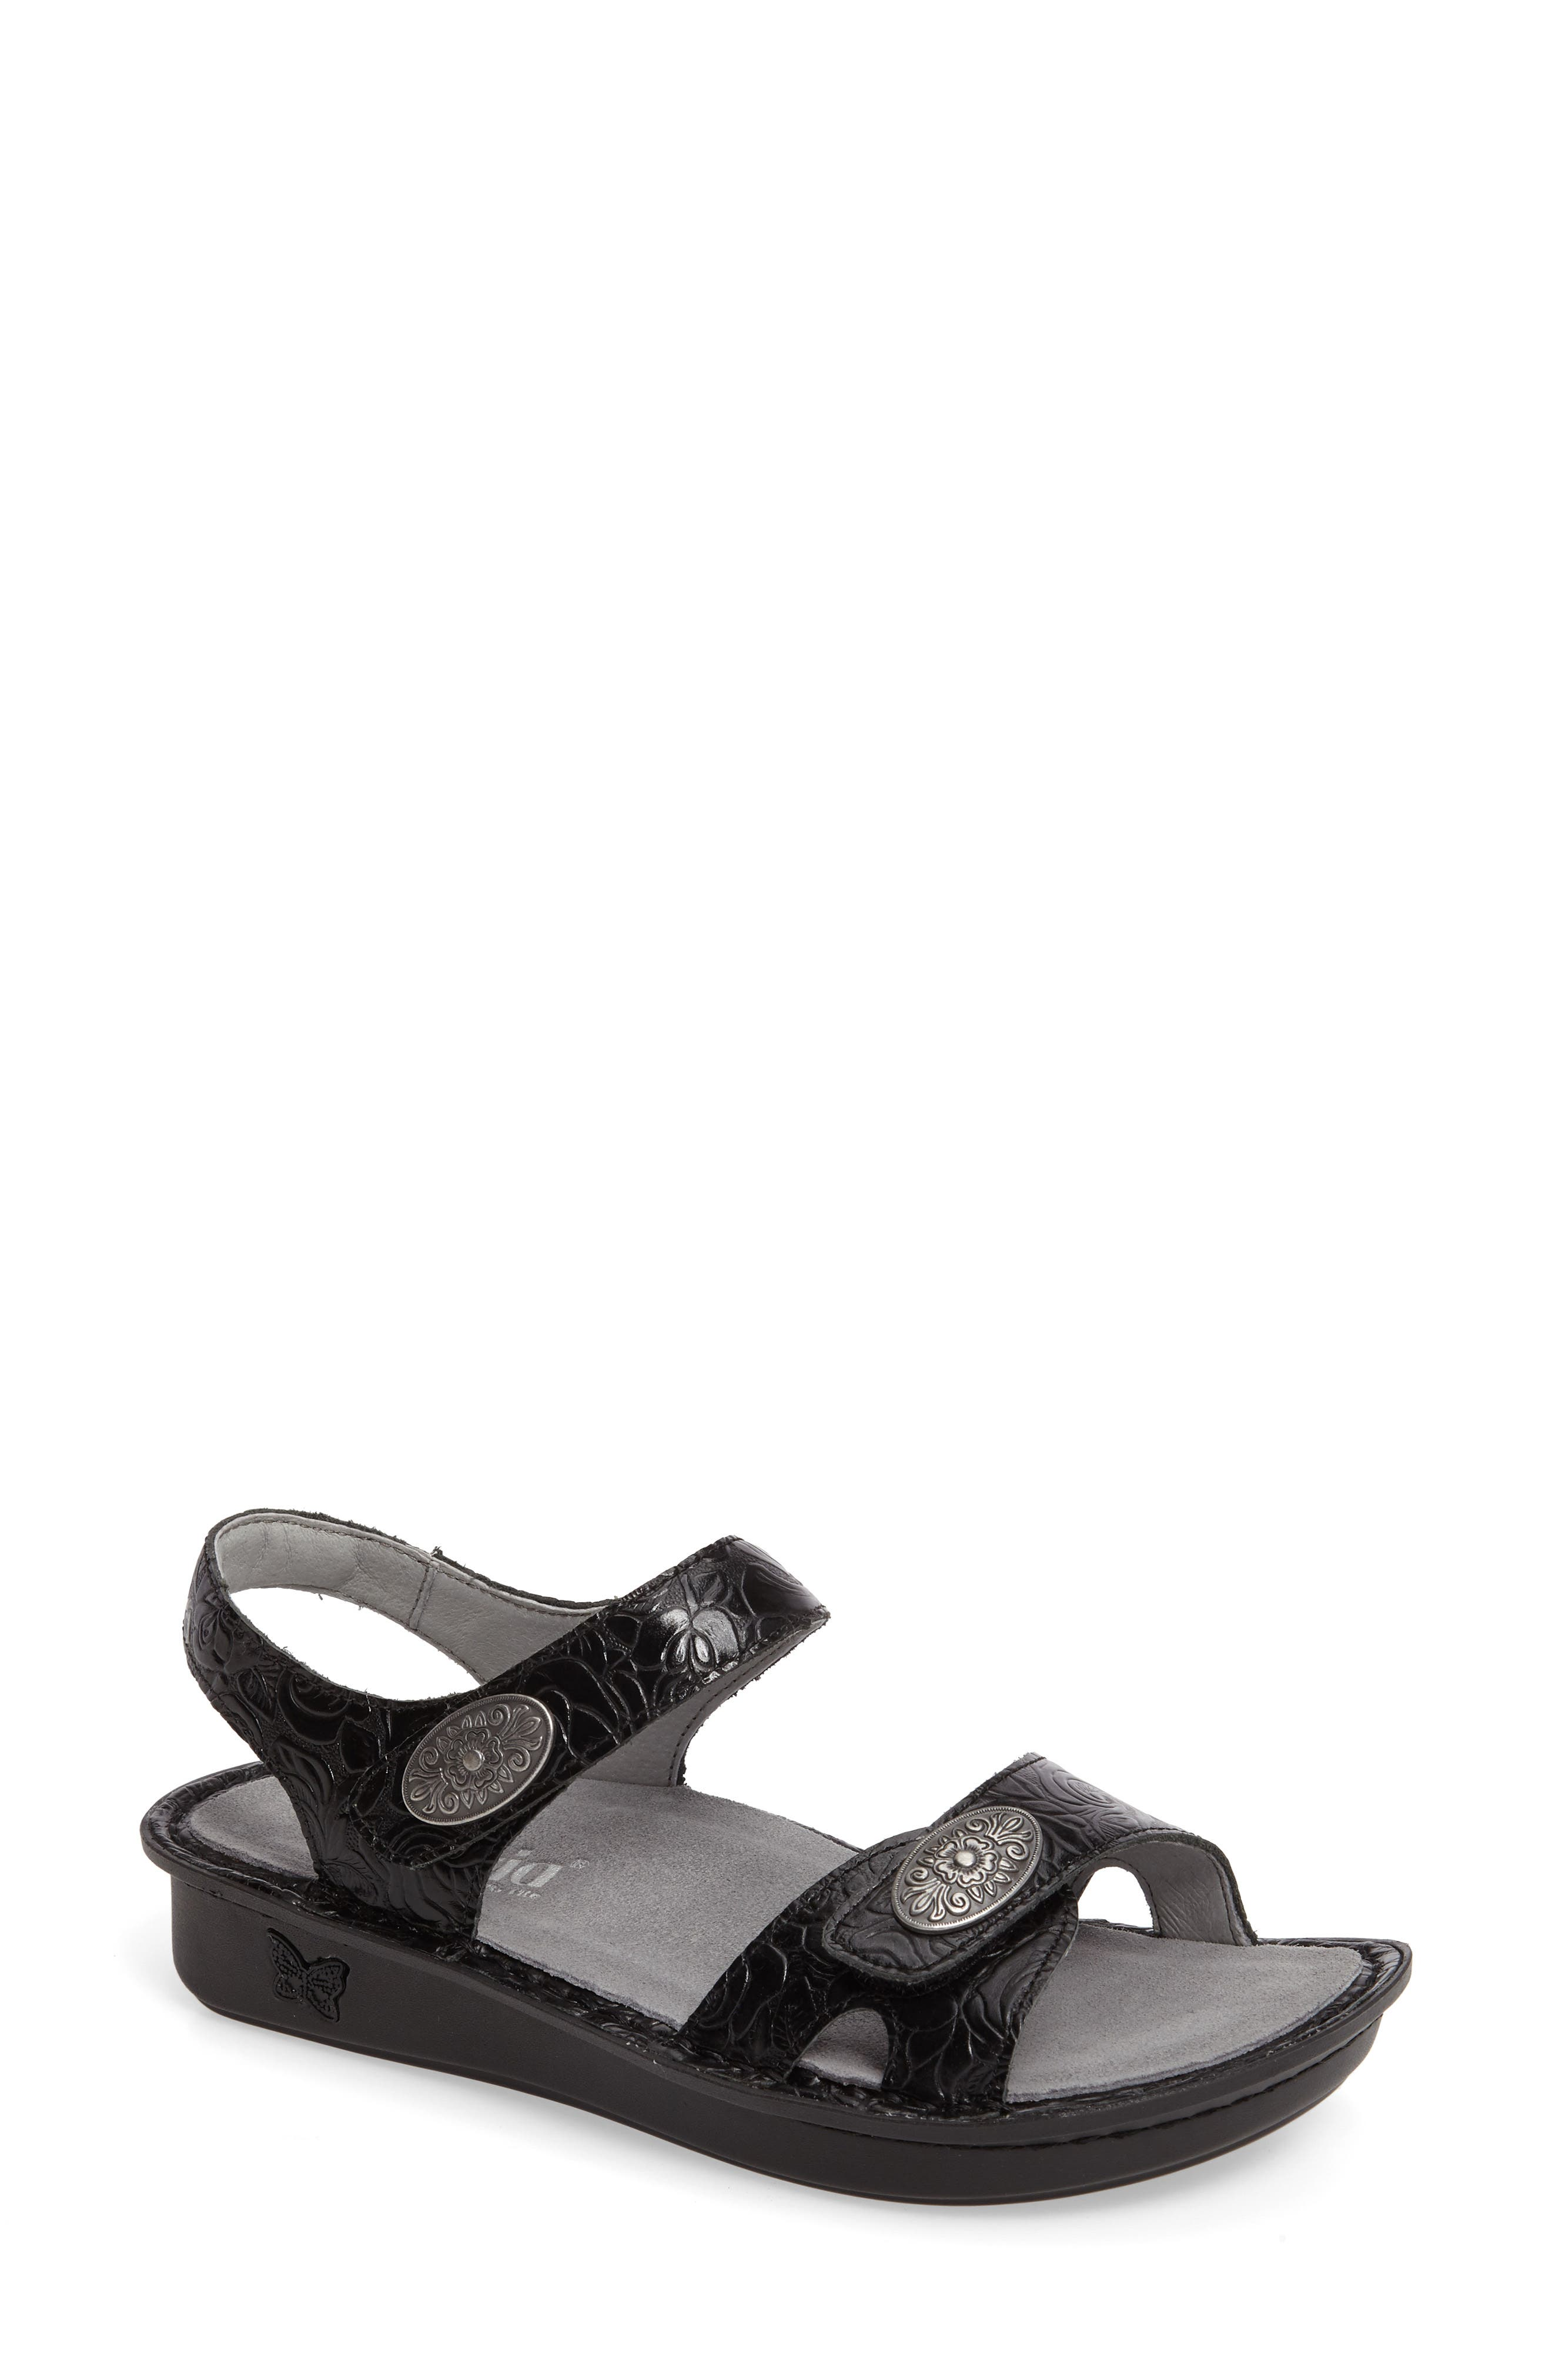 Vienna Sandal,                         Main,                         color, Cowgirl Tar Leather